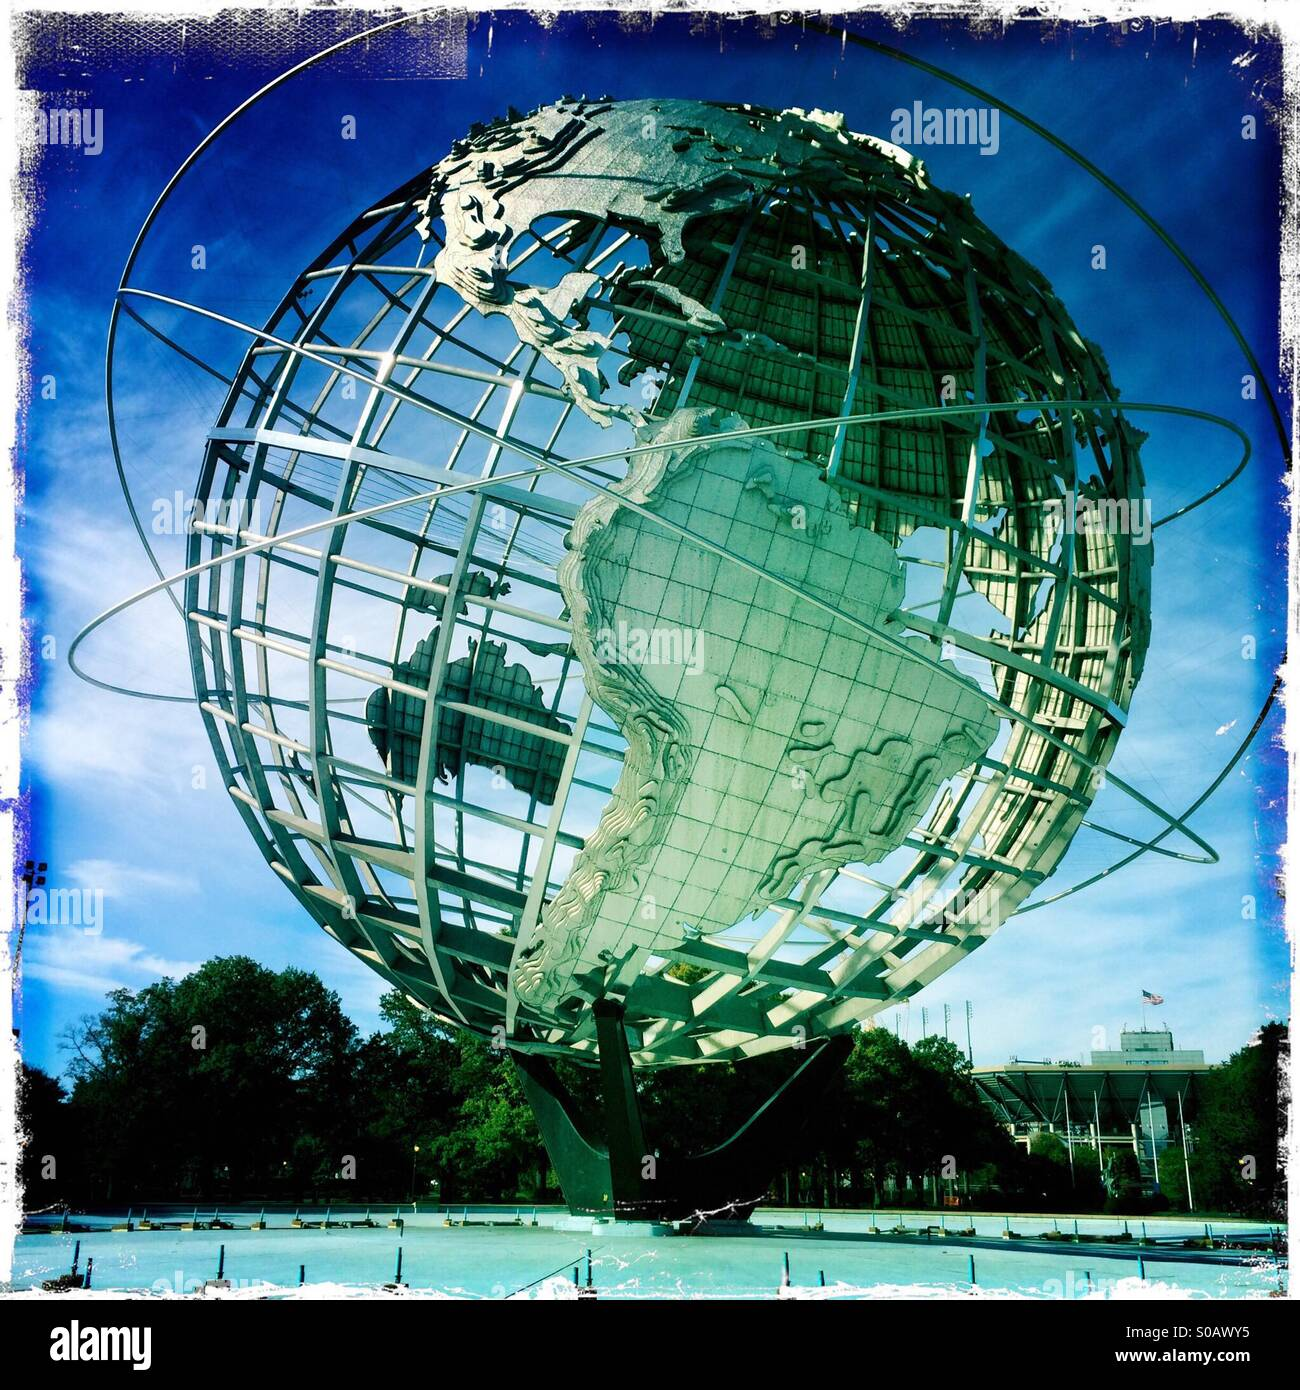 The Unisphere Monument At The 1964 New York World Fair Site At